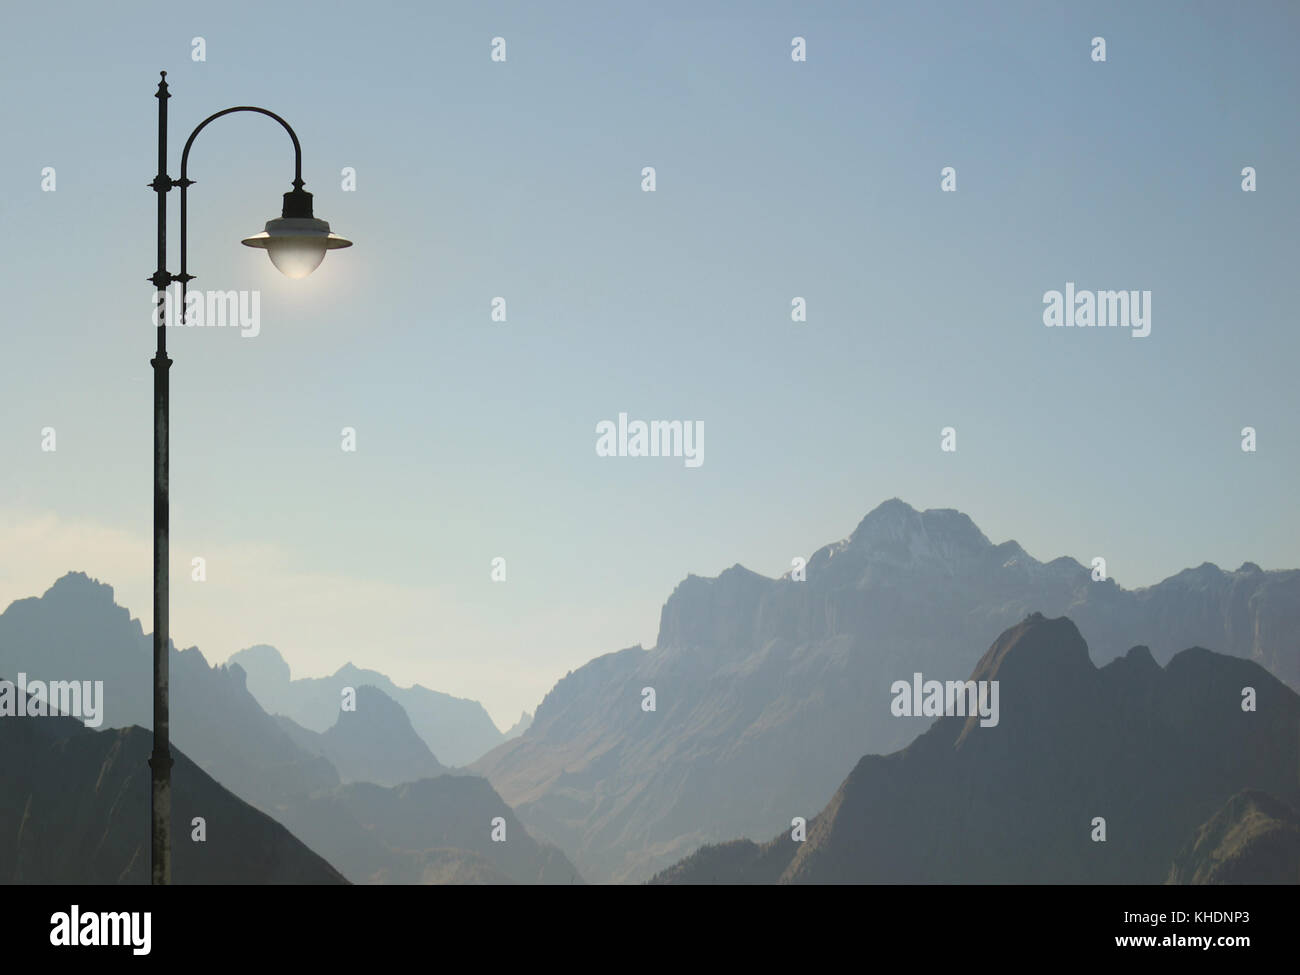 Beautiful and poetic view of Dolomites Alps in Italy with a street lamp detail - Stock Image